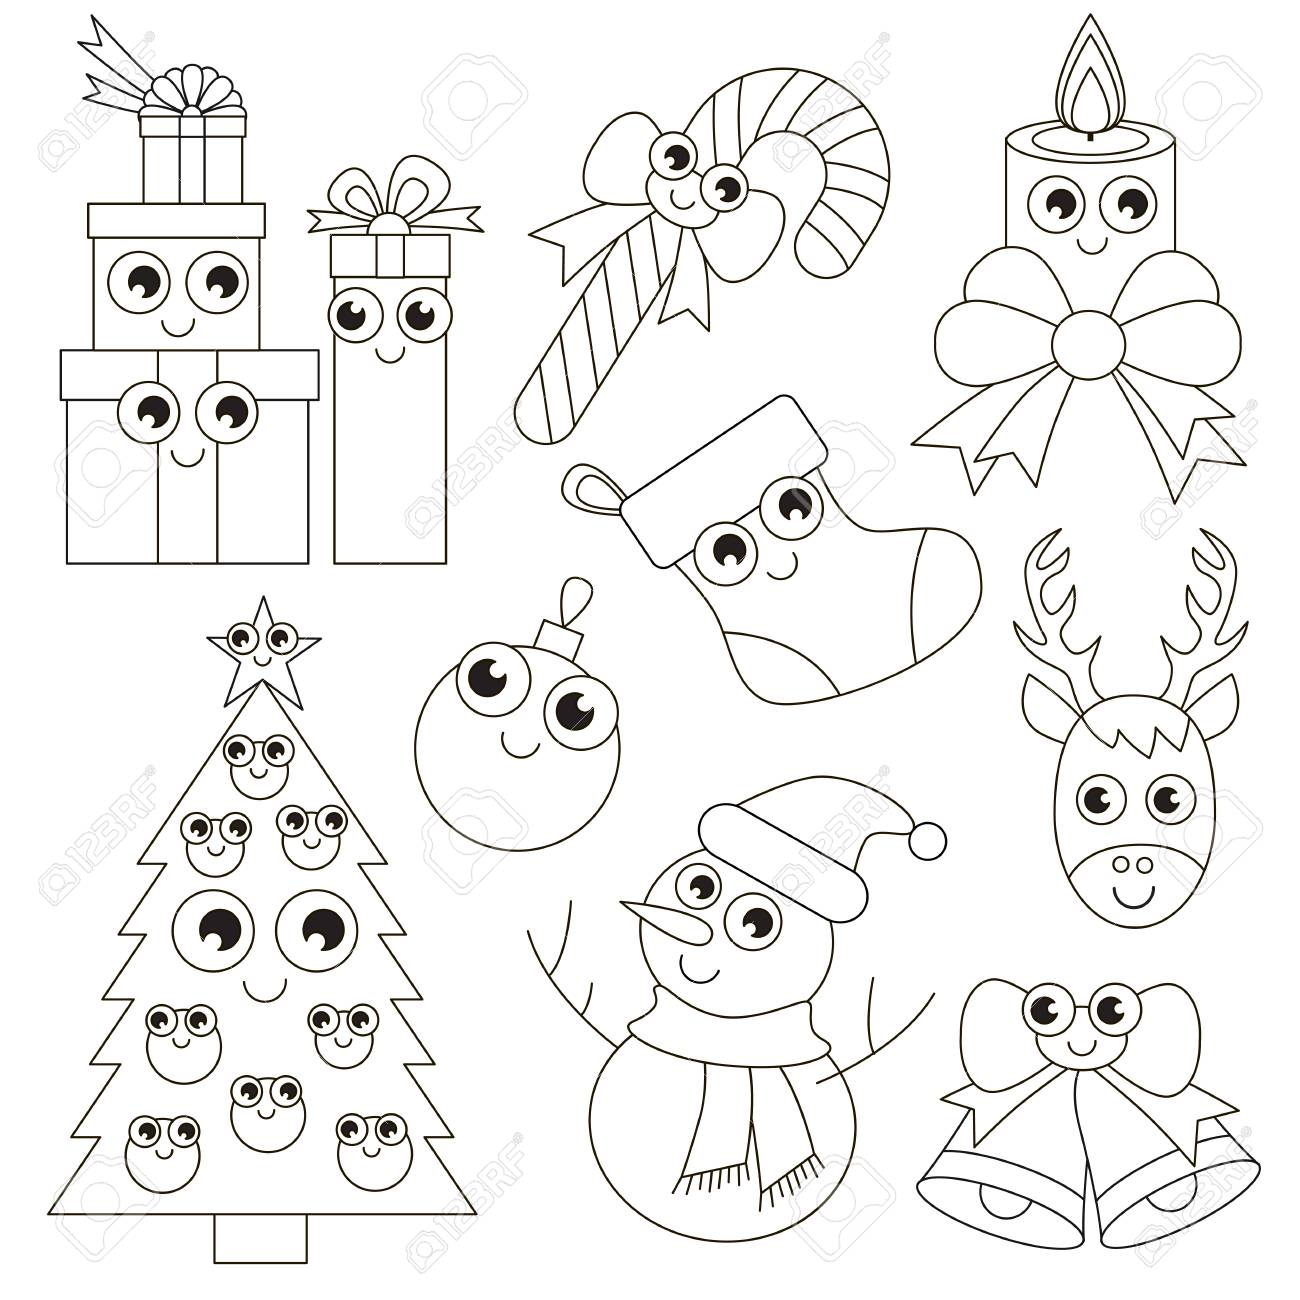 Funny Christmas Holiday Set To Be Colored The Big Coloring Book For Preschool Kids With